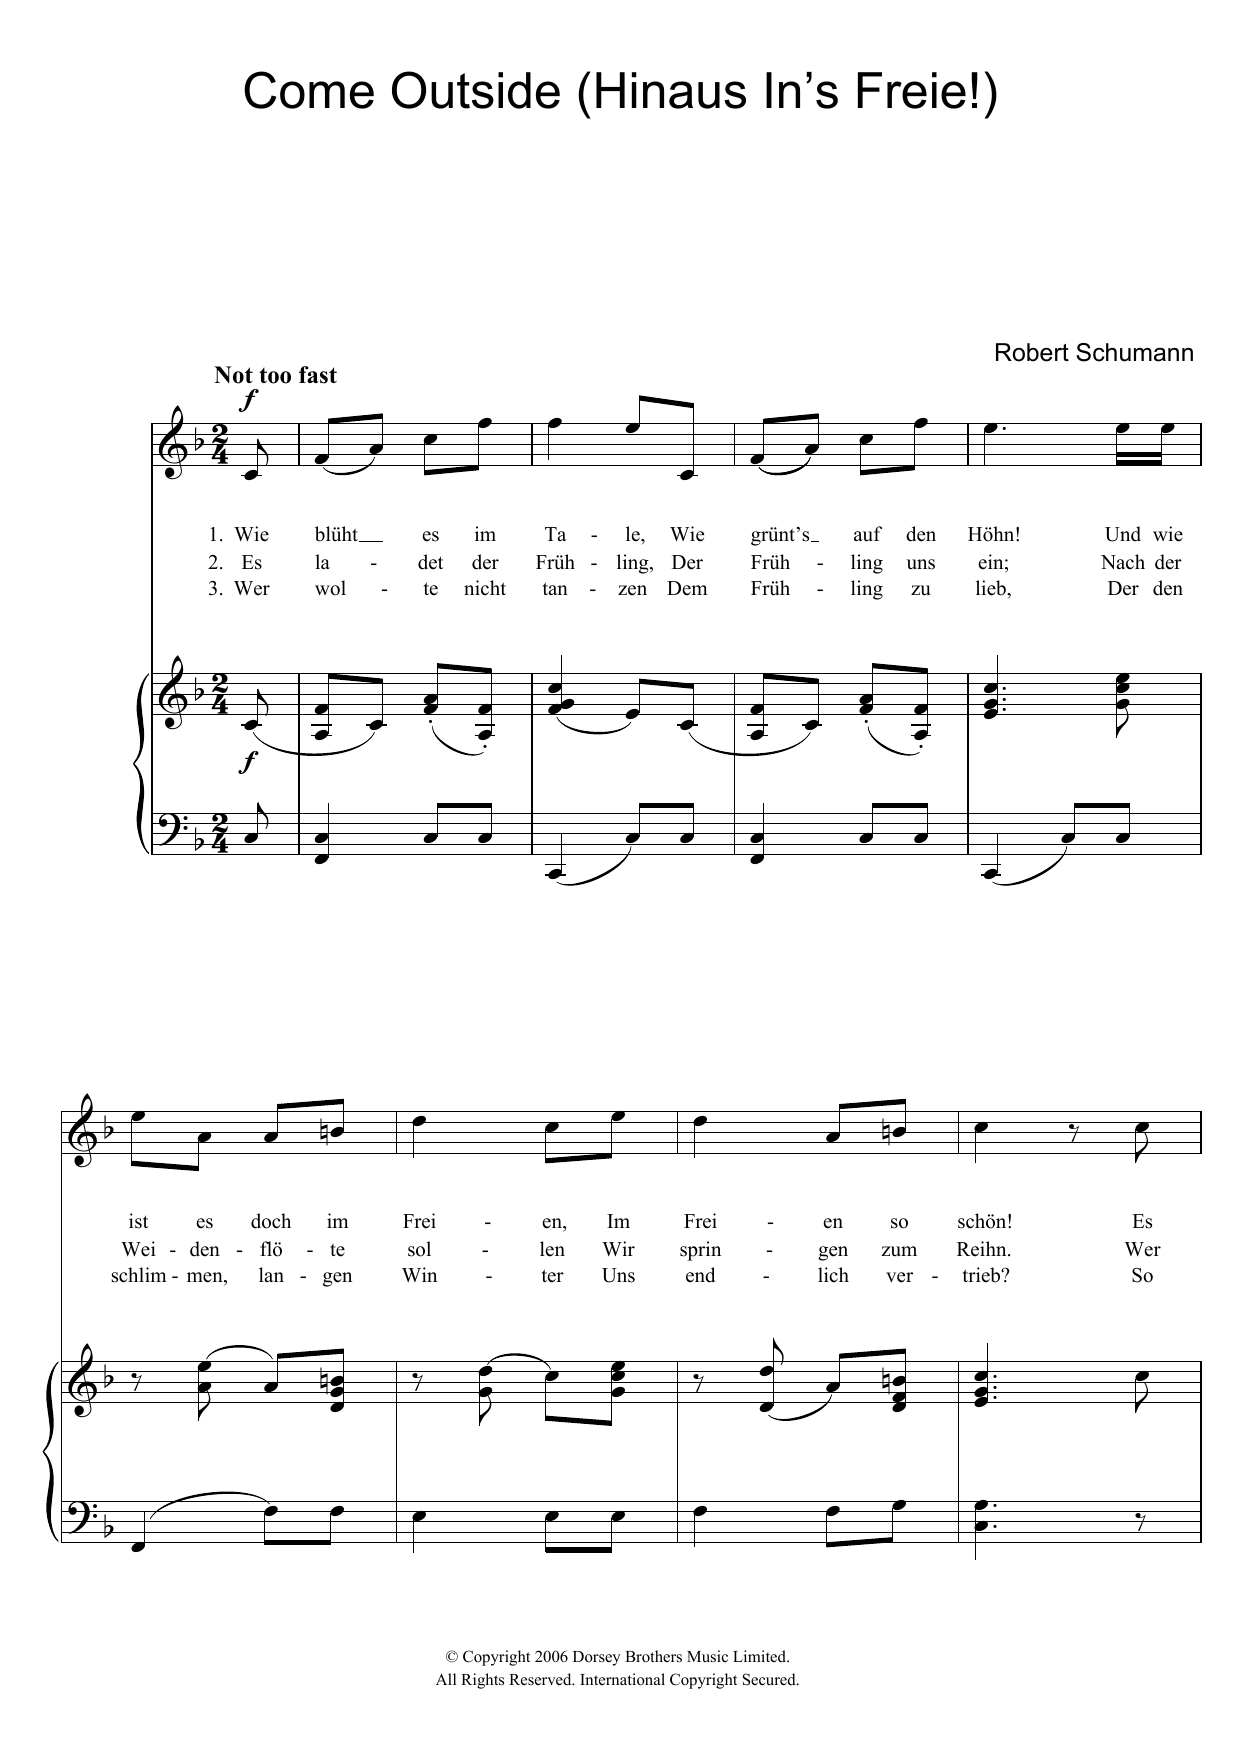 Hinaus In's Freie! (Come Outside!) Sheet Music